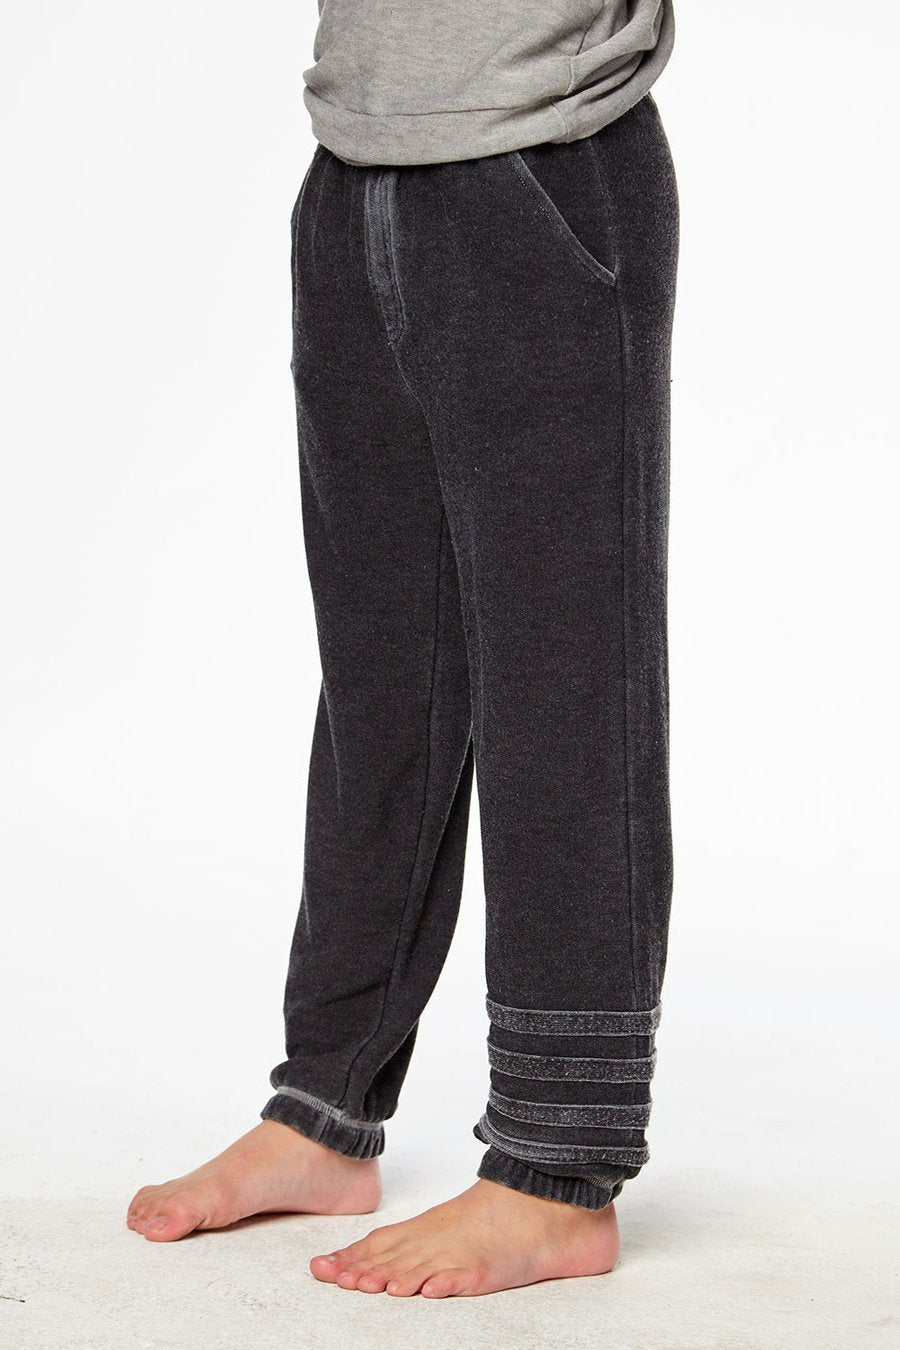 BOYS COZY KNIT JOGGERS W/ STRAPPINGS